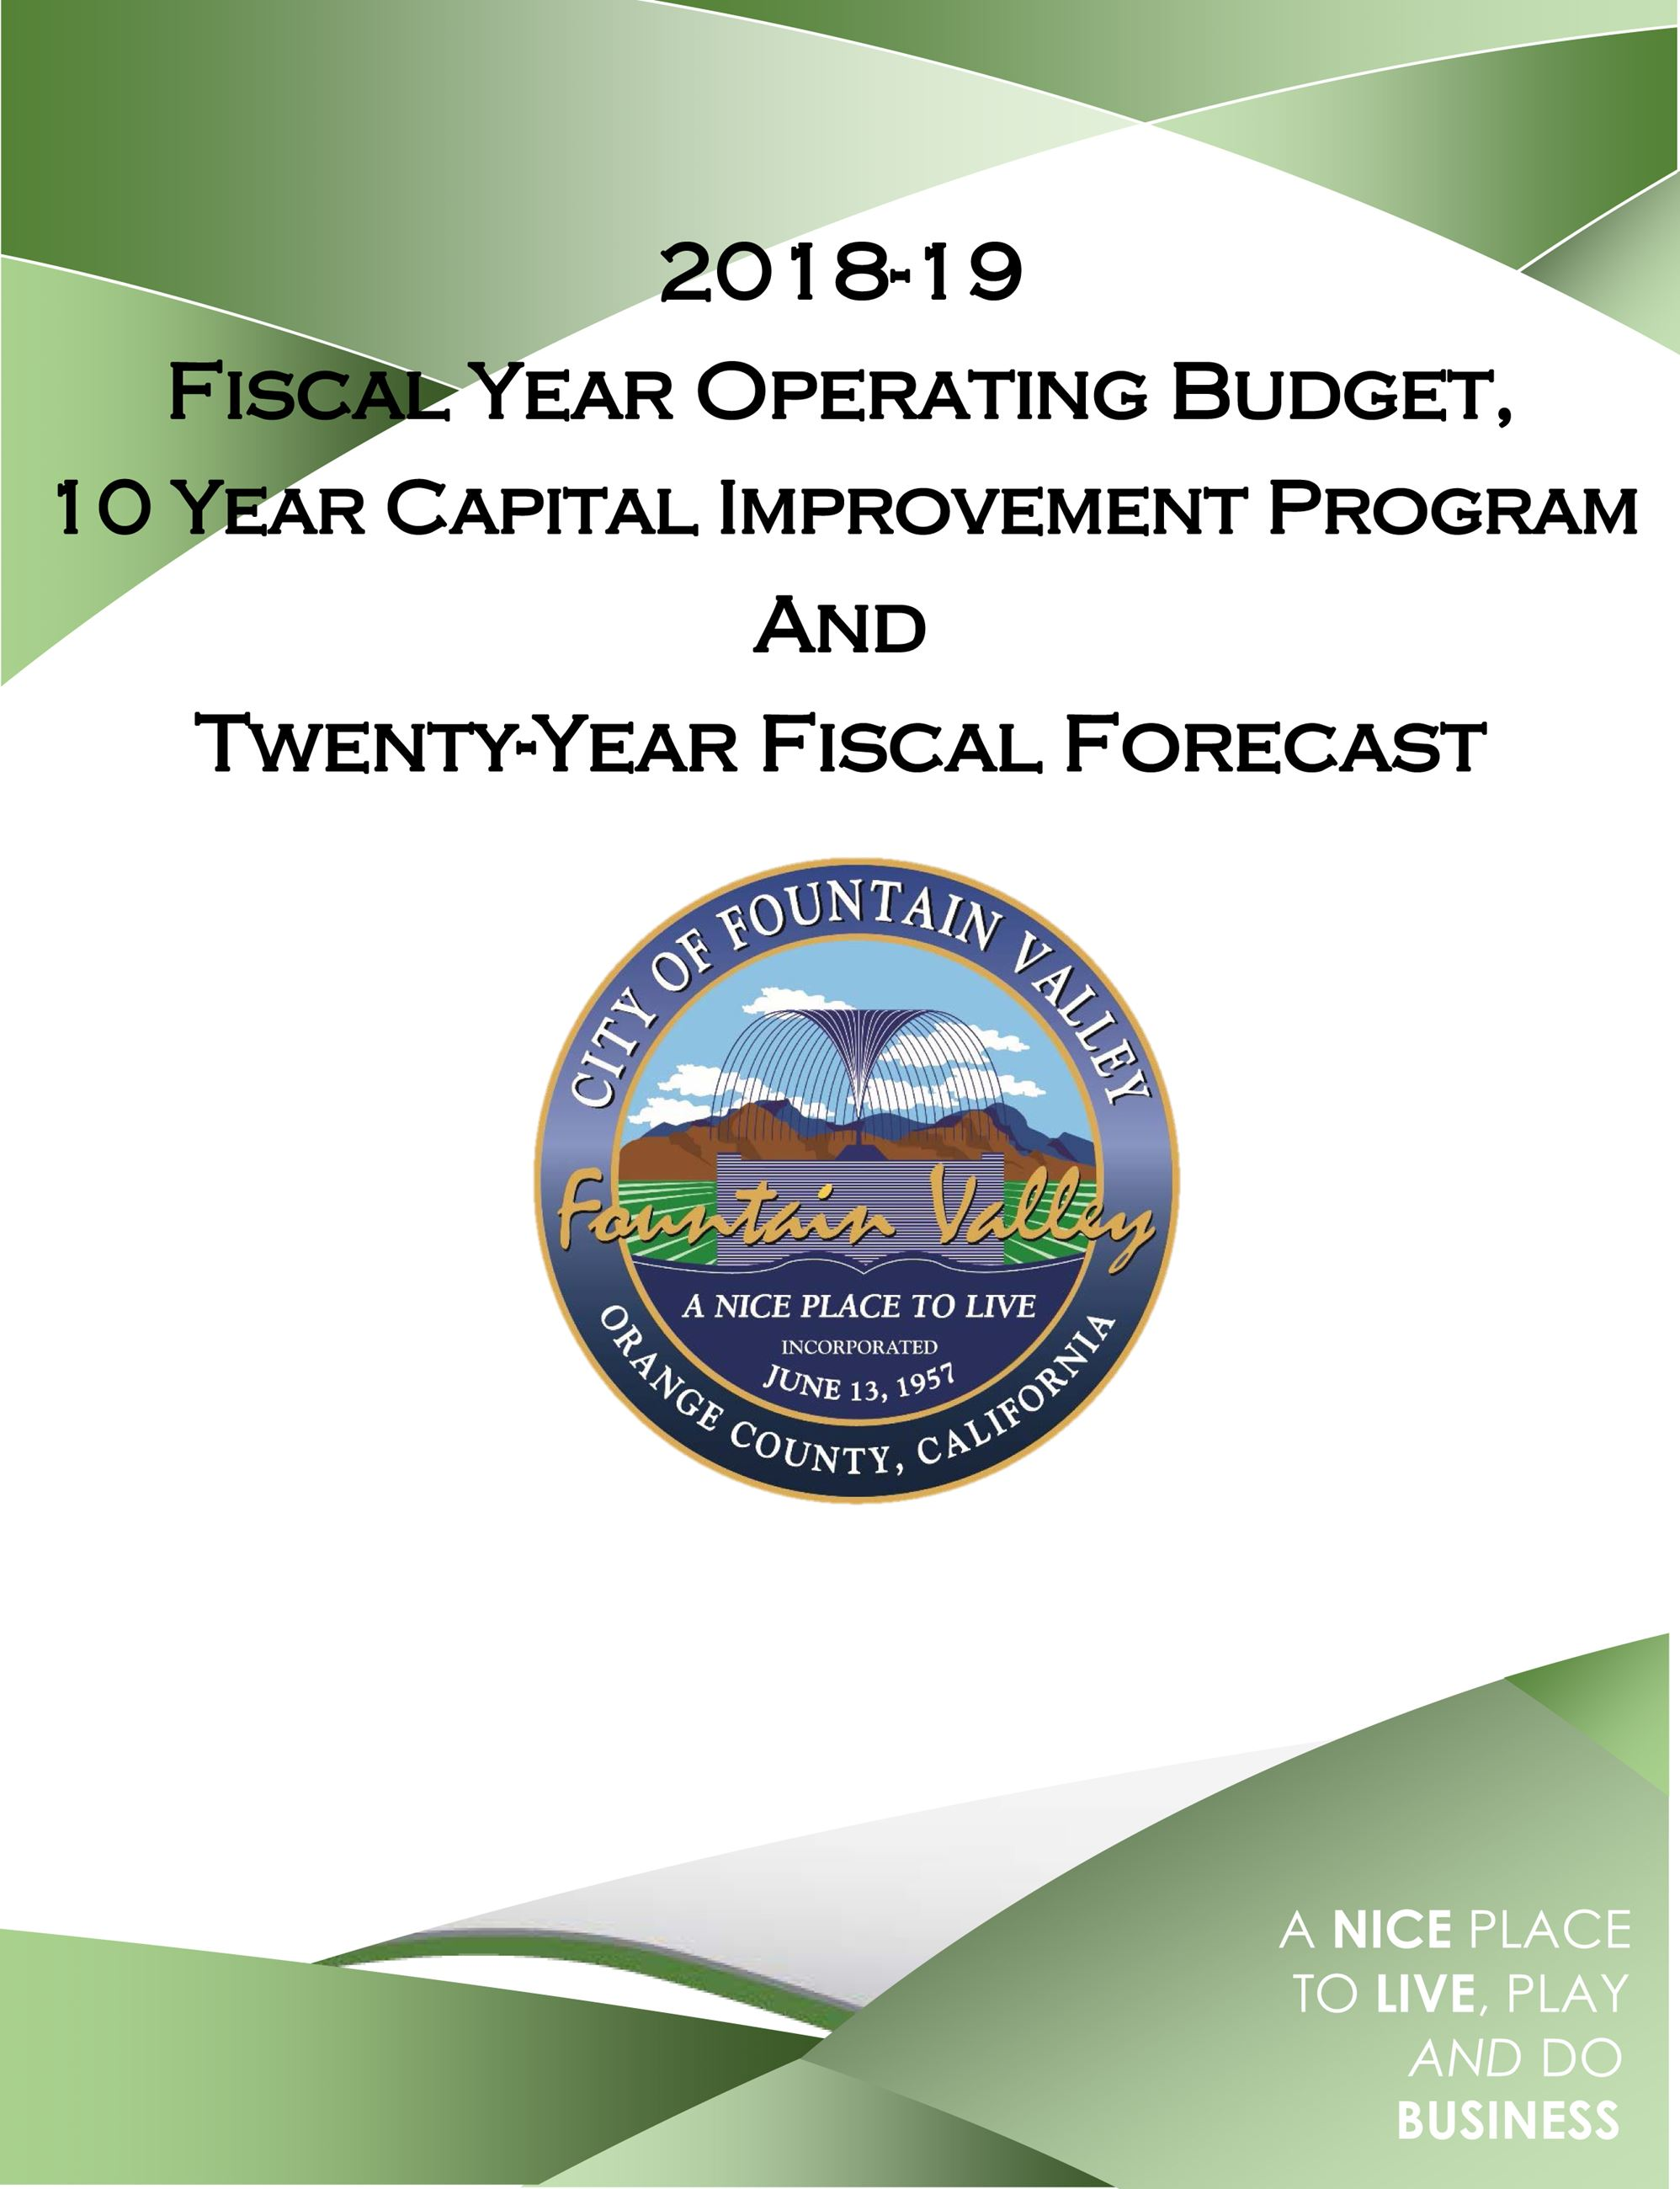 Fountain Valley California 2018 19 Fiscal Year Operating Budget Ford Taurus Engine Diagram 1 10 From Votes 2001 Ten Capital Improvement Program And Twenty Fo